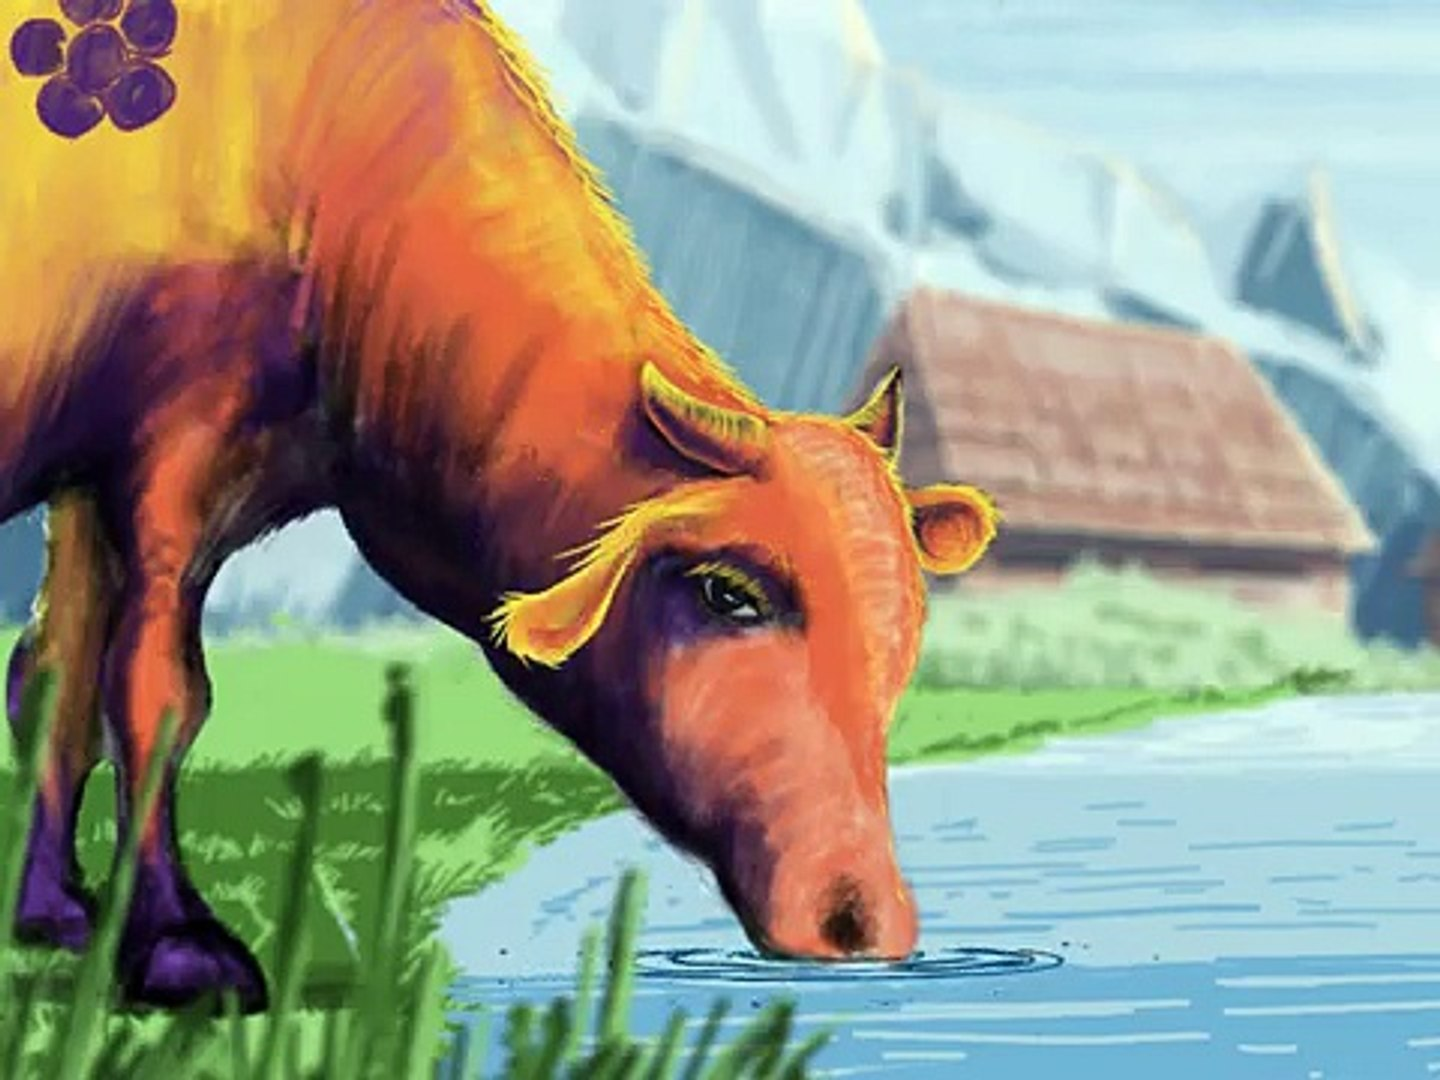 Cudotvorno mlijeko (Wondermilk) - a short animated film by Ivan Ramadan (Bosnian version)